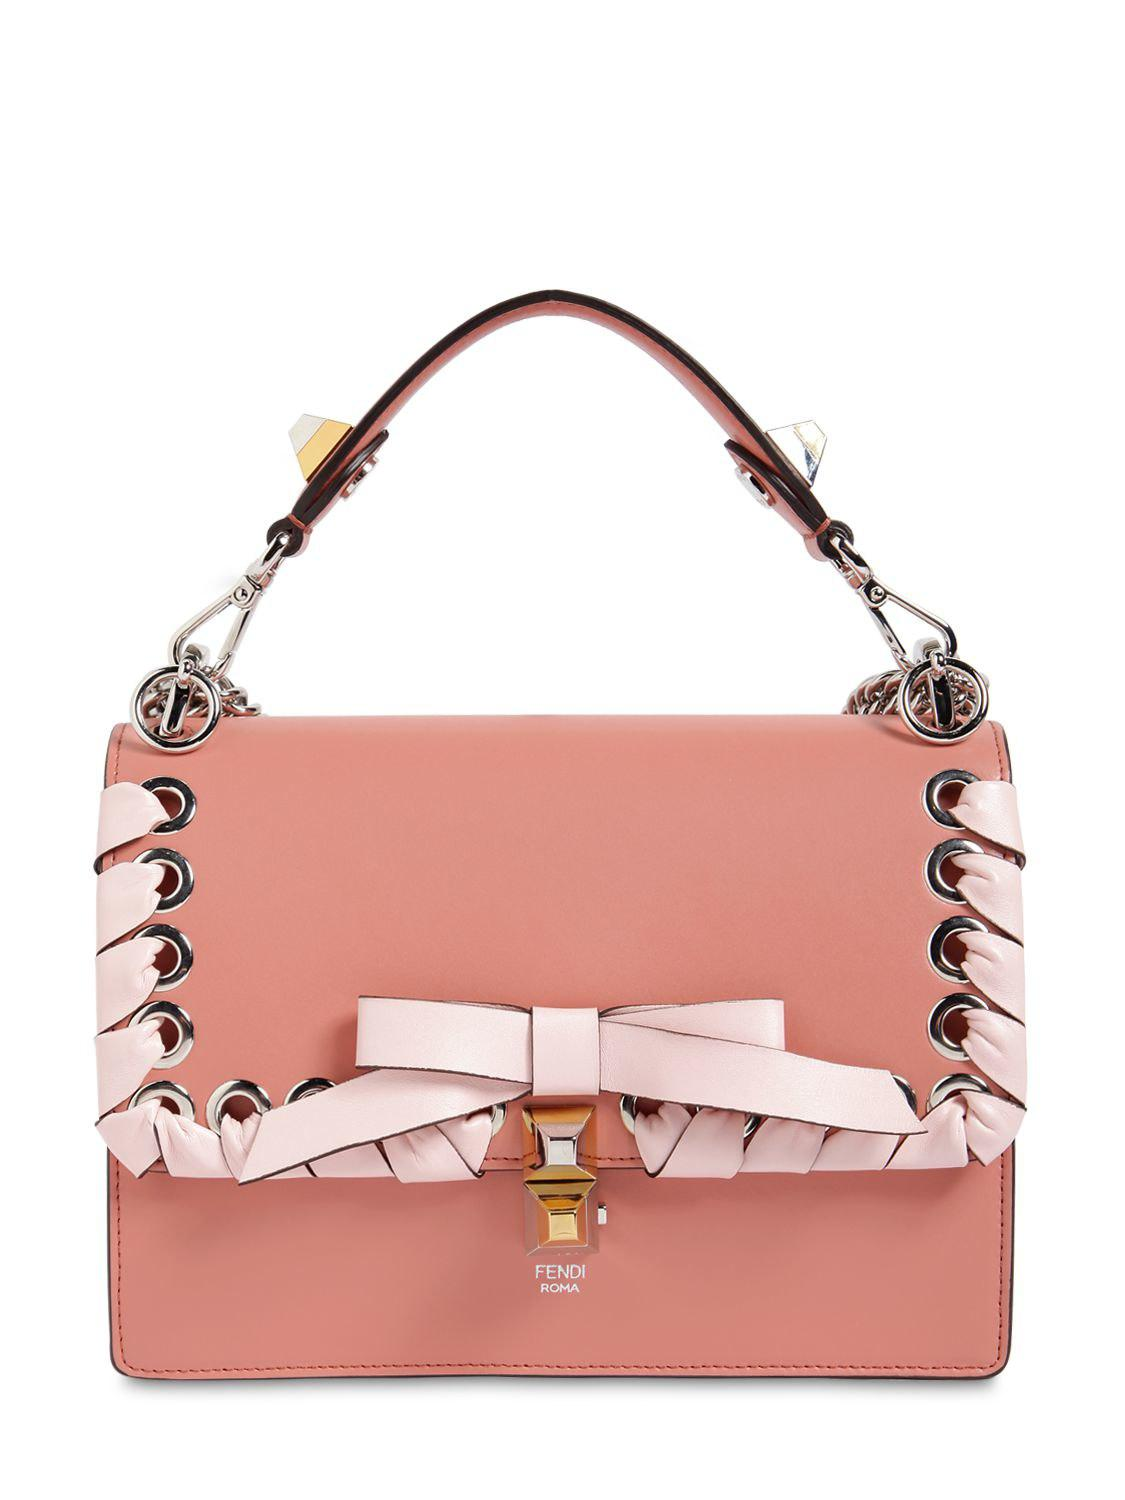 63beabd1e4a0 Lyst - Fendi Medium Kan I Lace-up Leather Bag in Pink